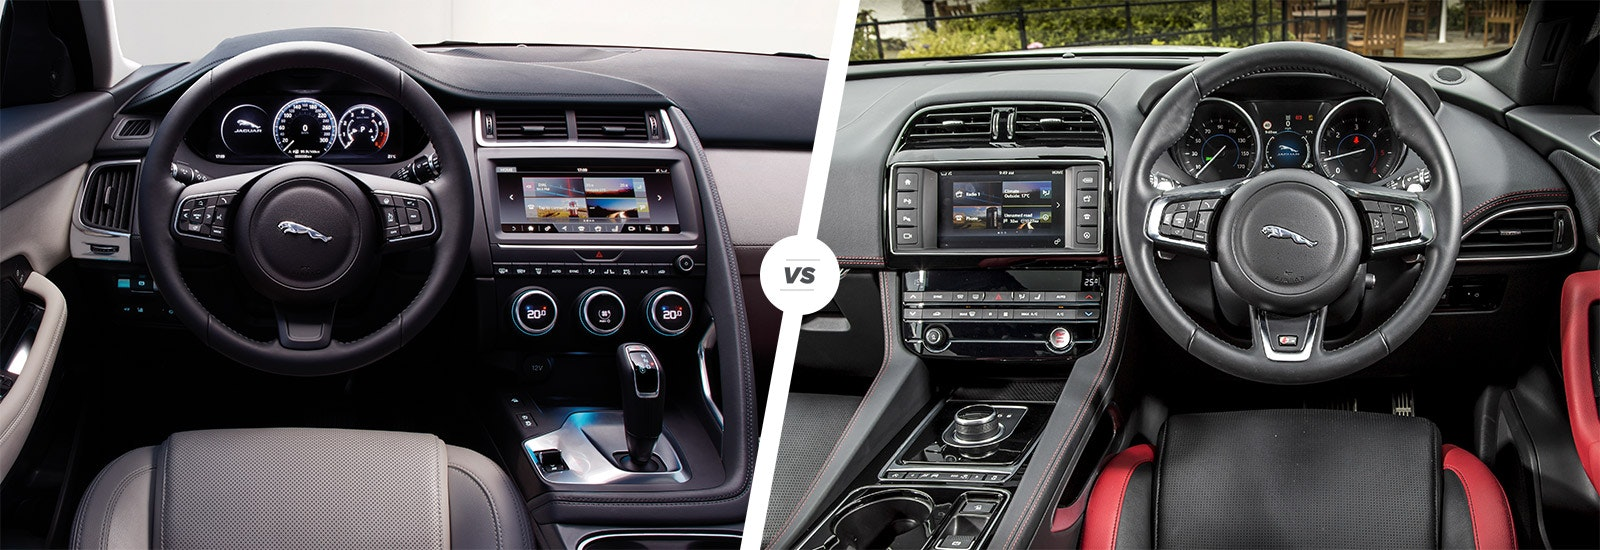 Jaguar E Pace On The Left, F Pace On The Right